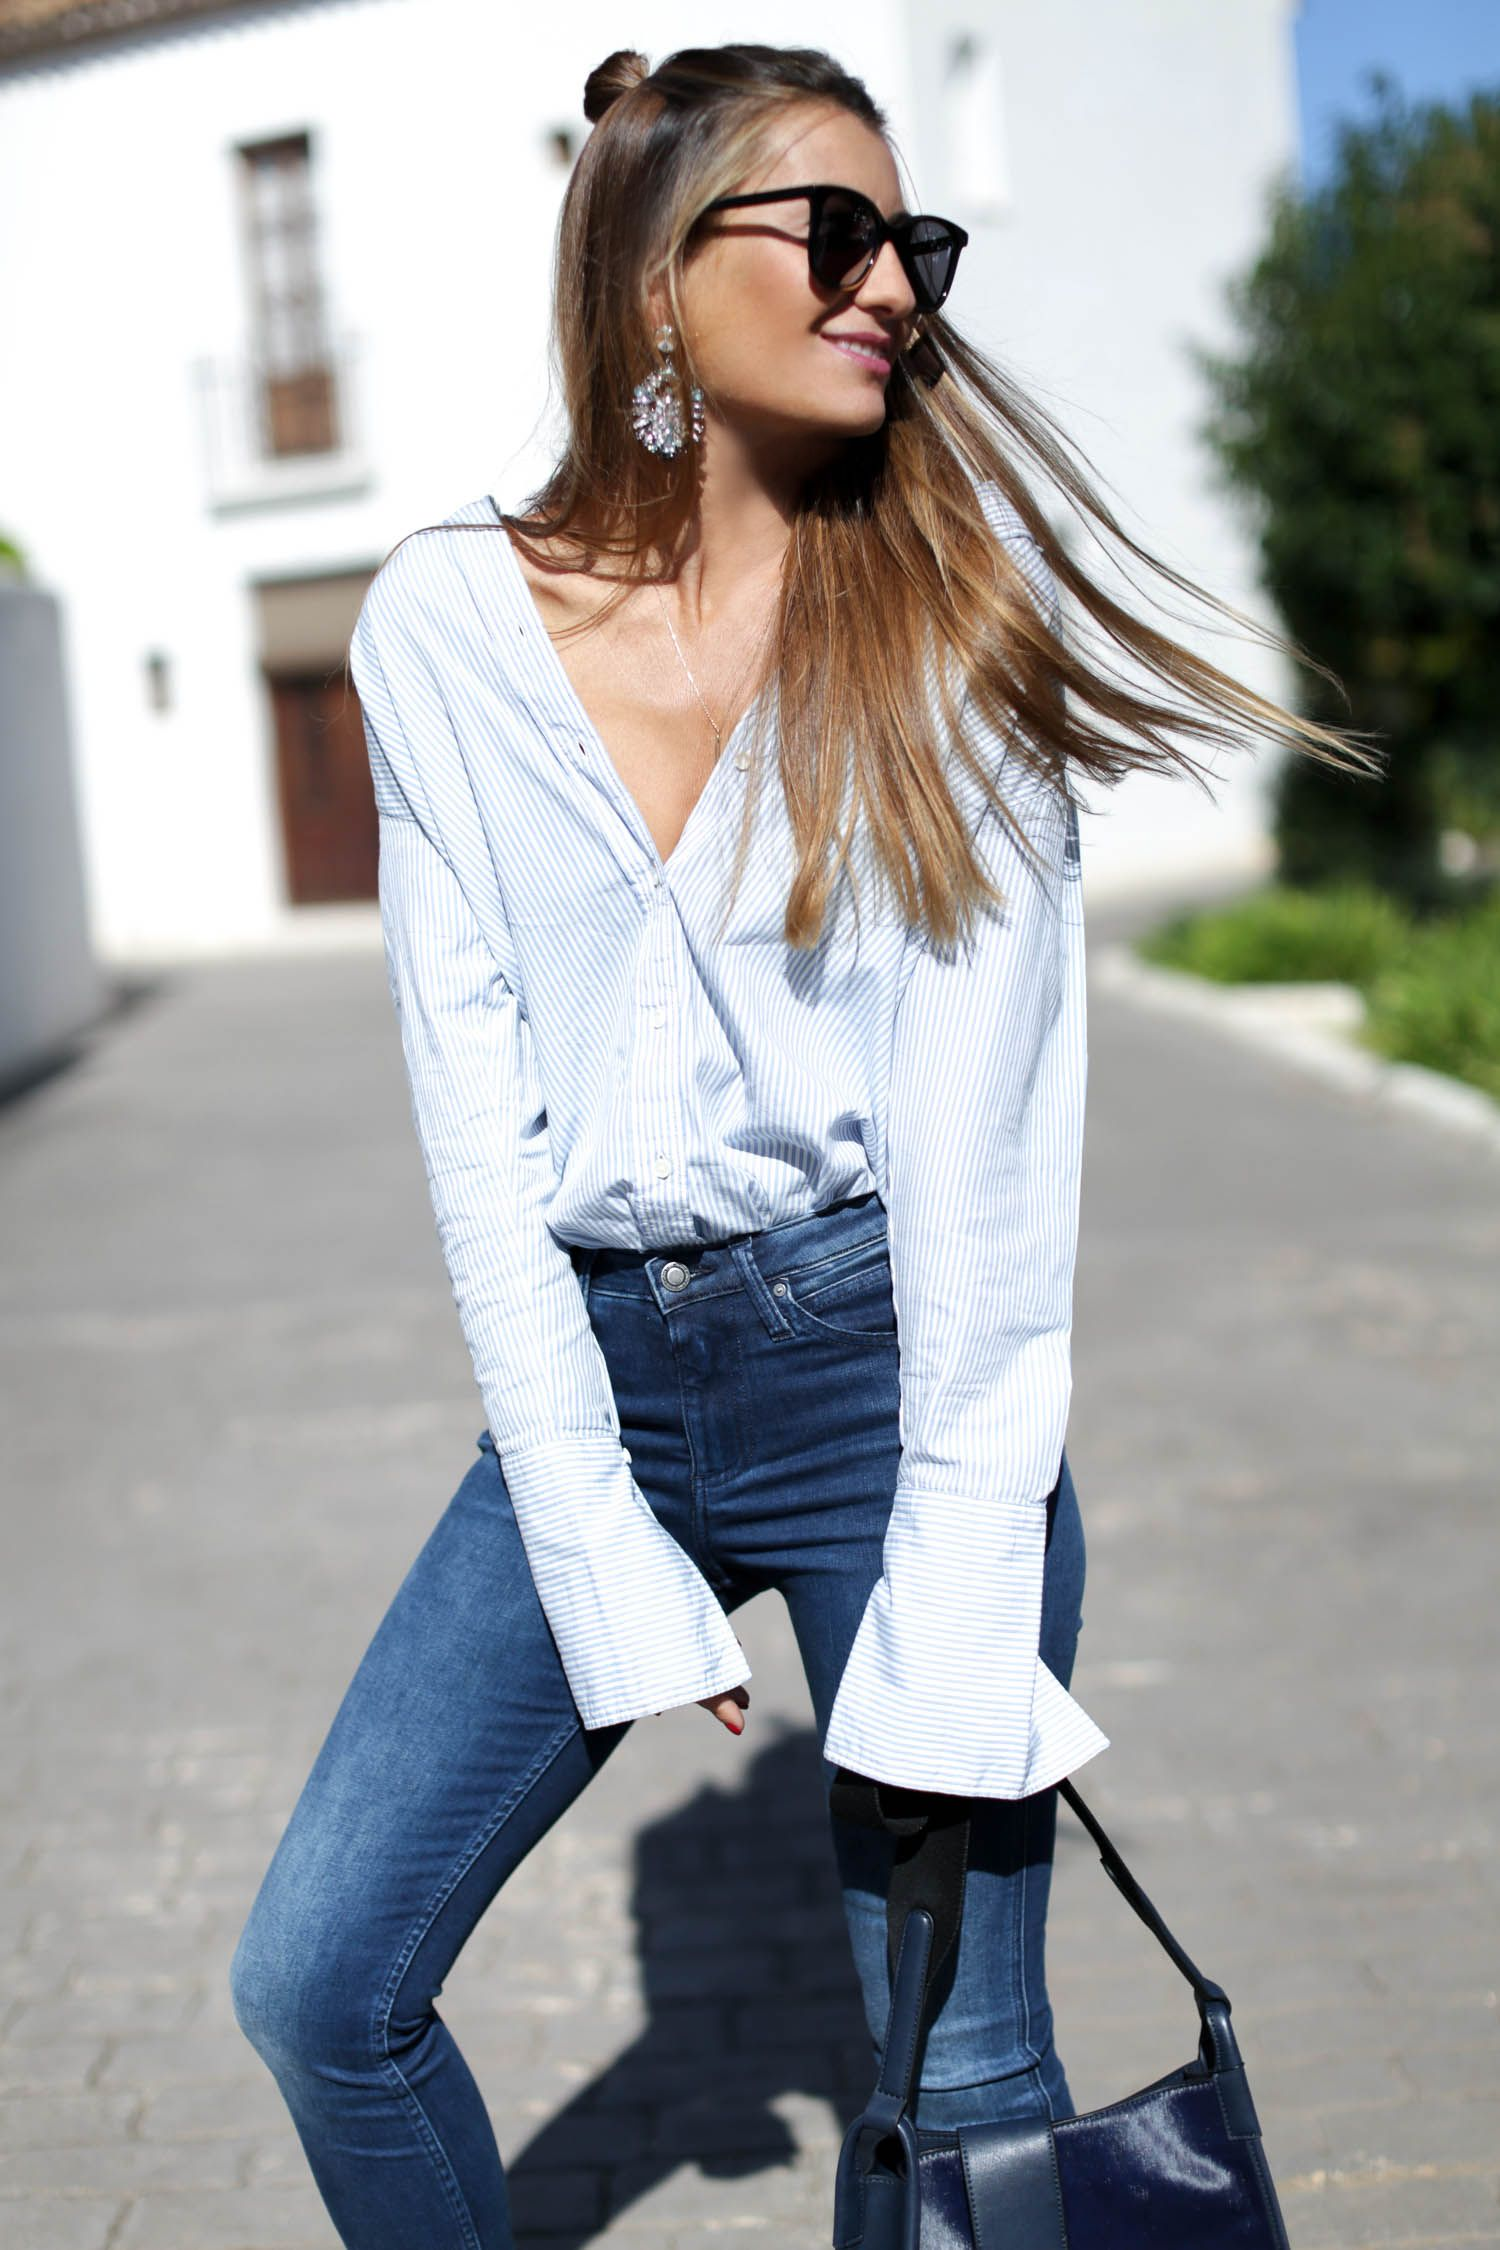 beb7ce647 OH, HI CALVIN KLEIN | Pinterest Love | Ropa, Camisas y Outfits